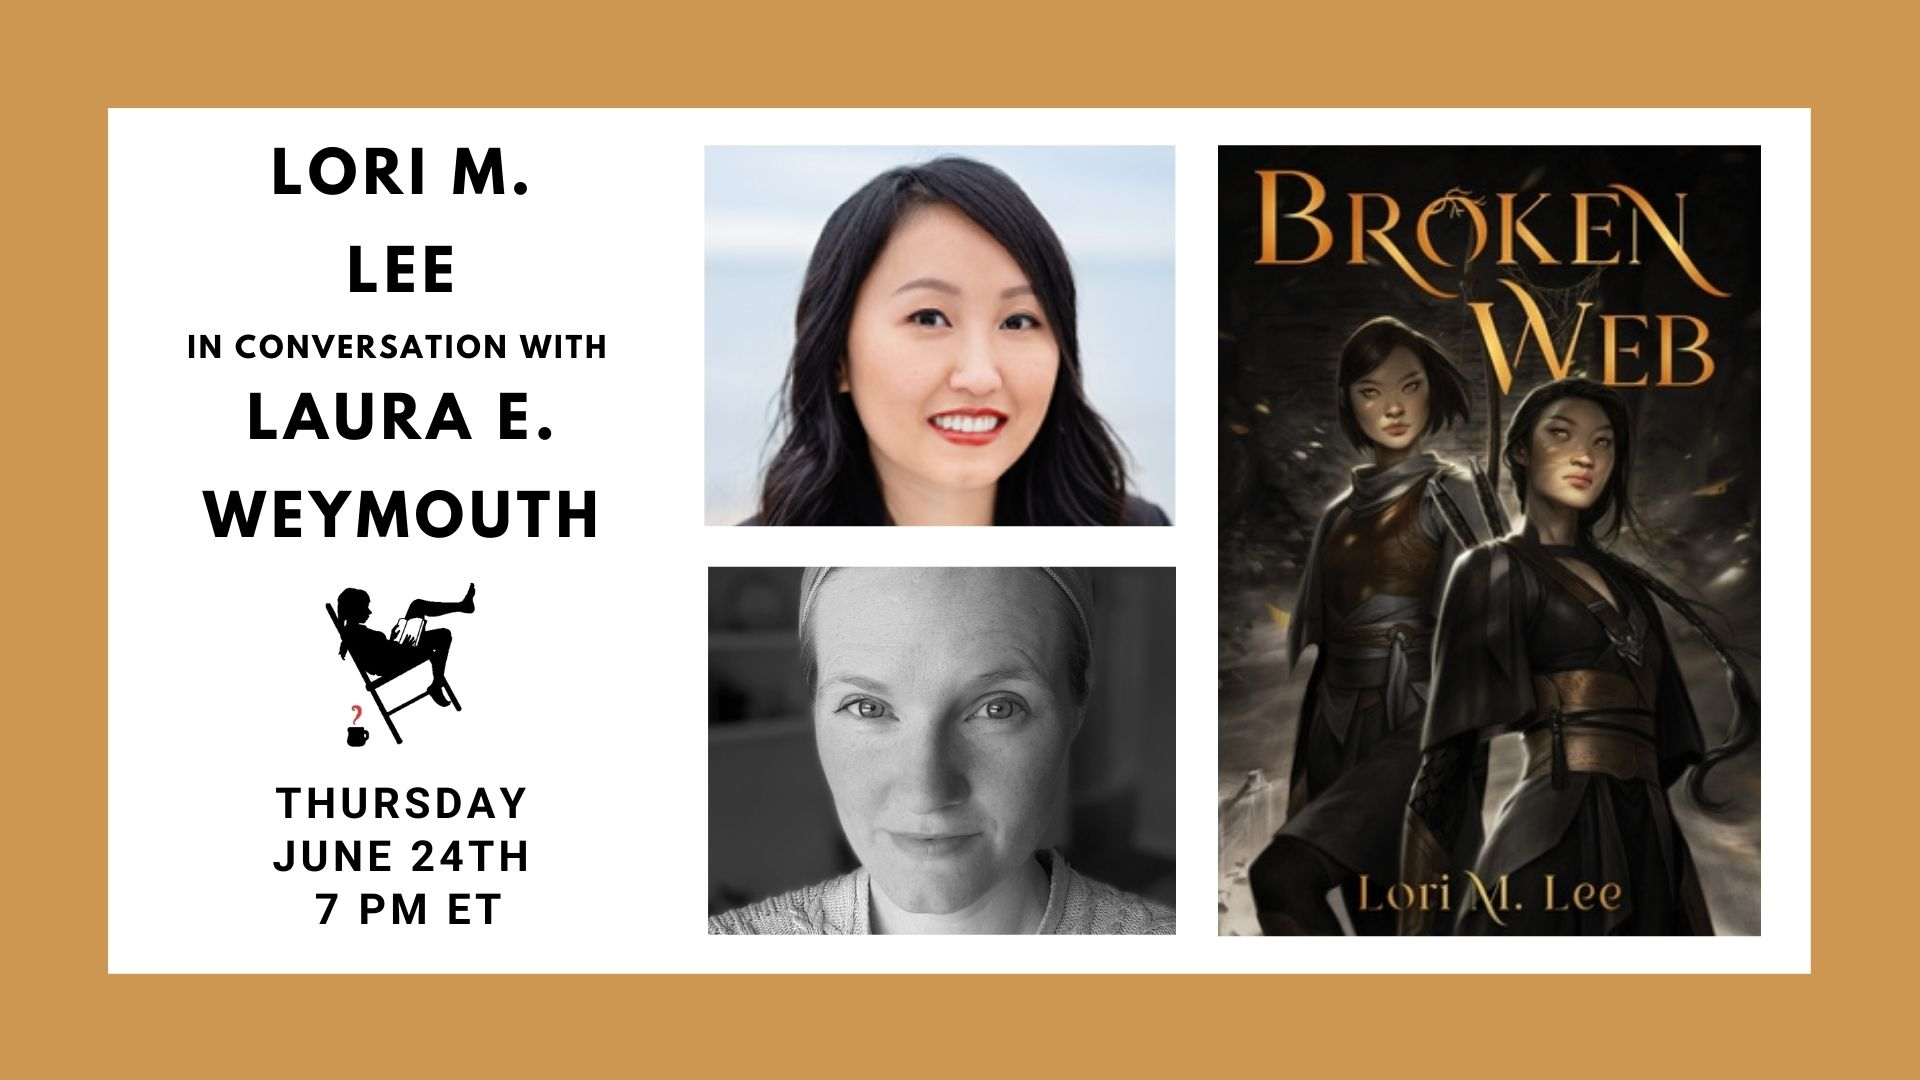 Image is of a gold border and white box containing the Broken Web book cover, photos of Lori M. Lee and Laura Weymouth, and the event on June 24th at 7pm. Additional text says Y.A. Fantasy